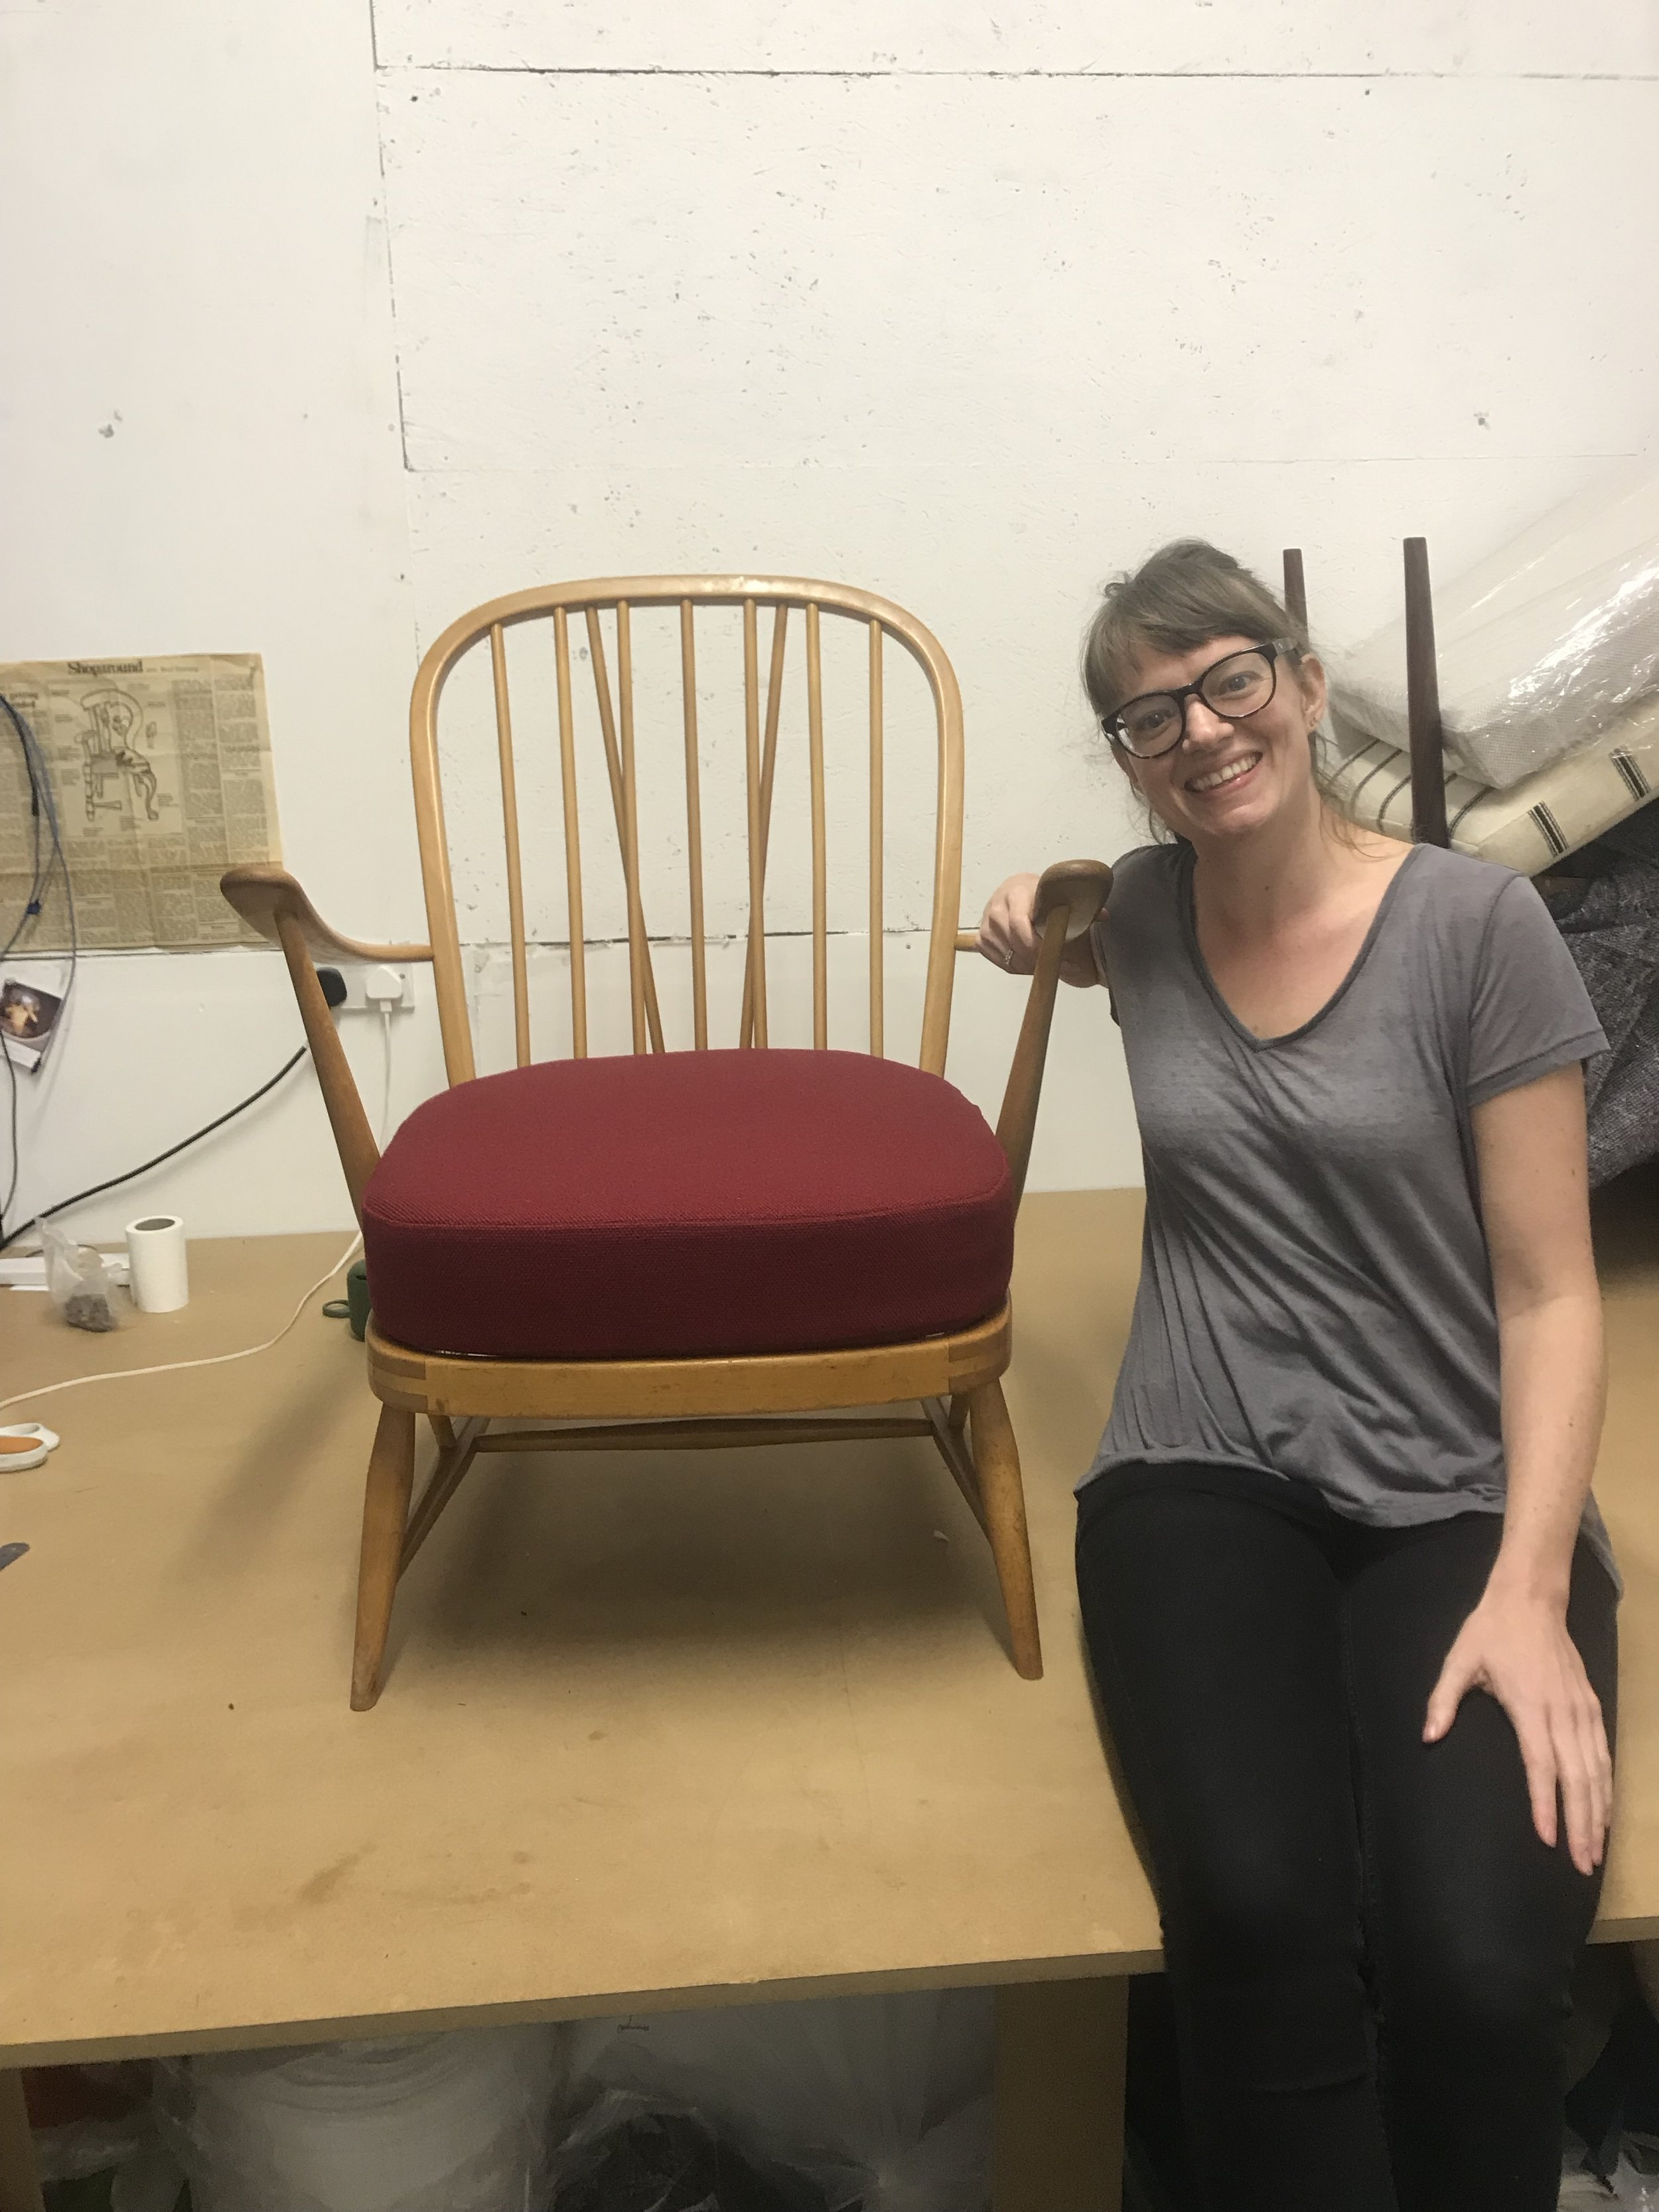 Ercol chair reupholstered by student at Edge Upholstery classes, London.